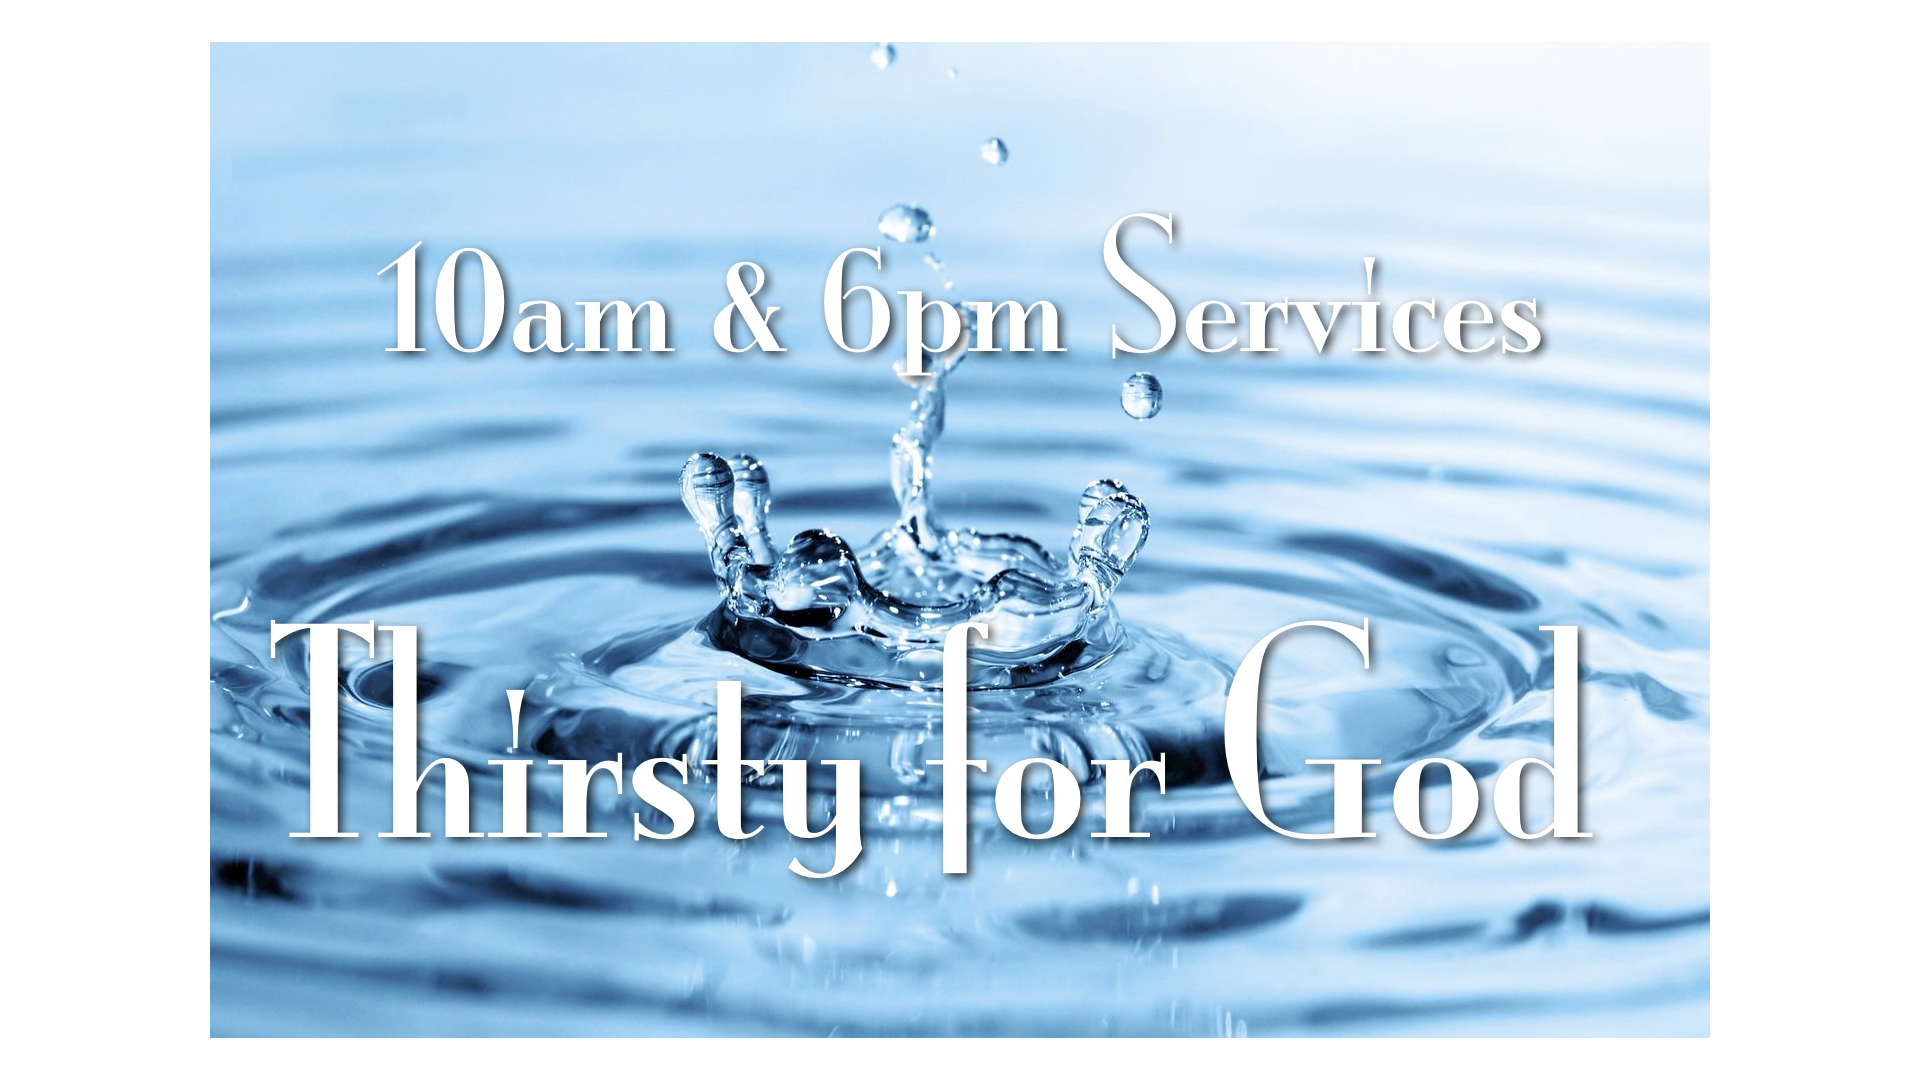 Our Sunday service times are 10 am and 6 pm. everyone is welcome, come join us!